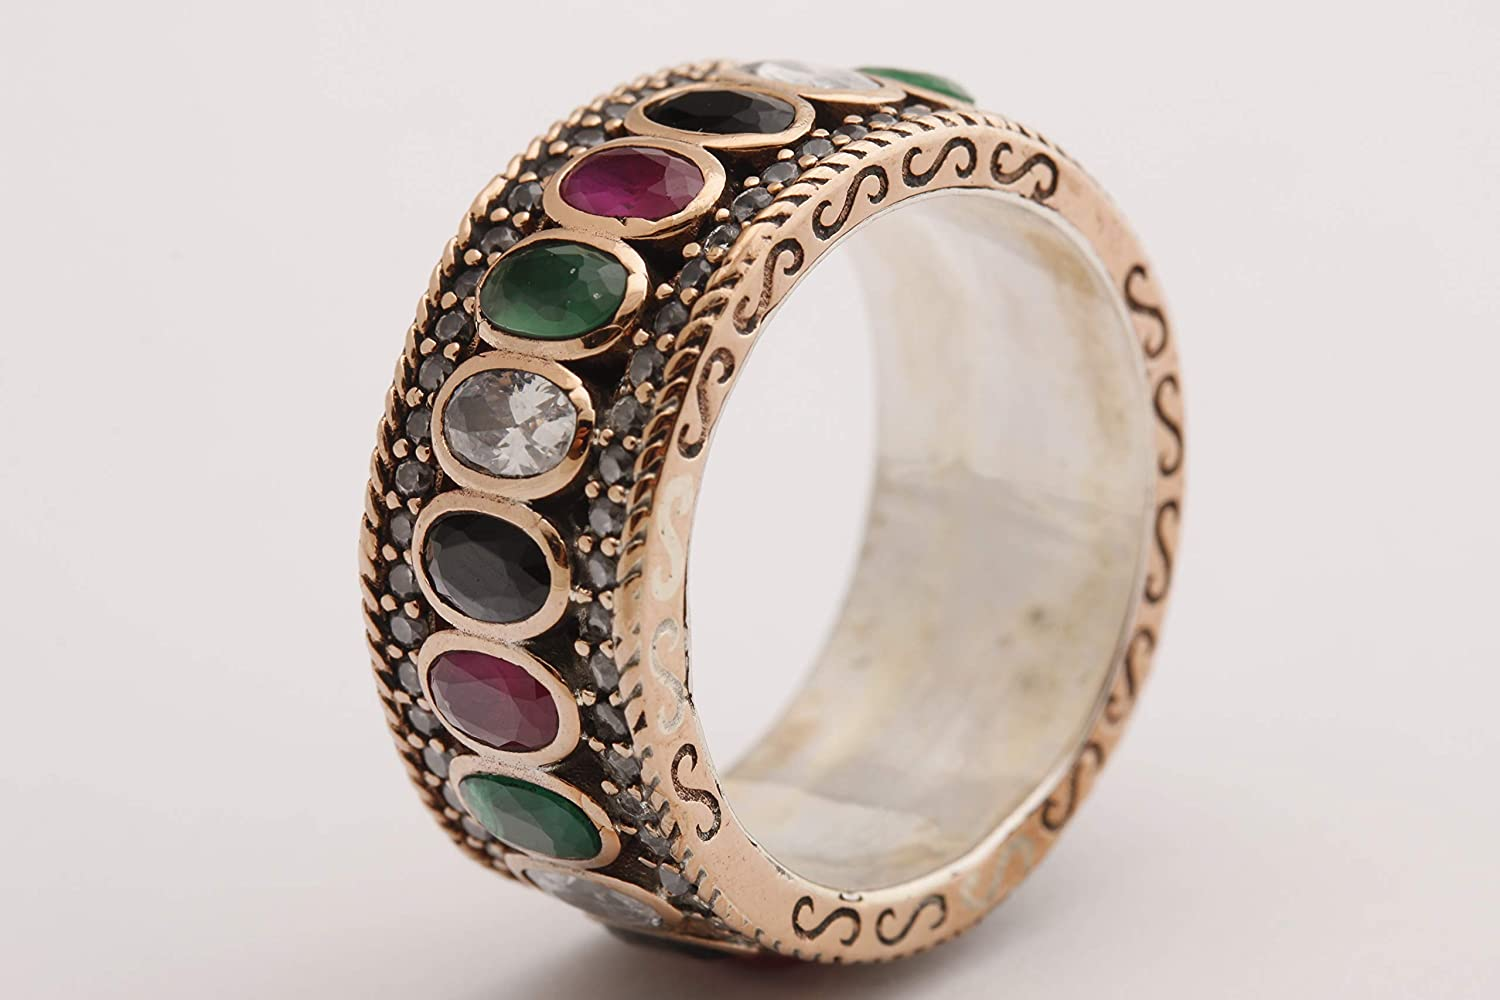 Turkish Handmade Jewelry Oval Cut Shiny Emerald Pink Ruby Sapphire Topaz 925 Sterling Silver Band Ring Size 8.5